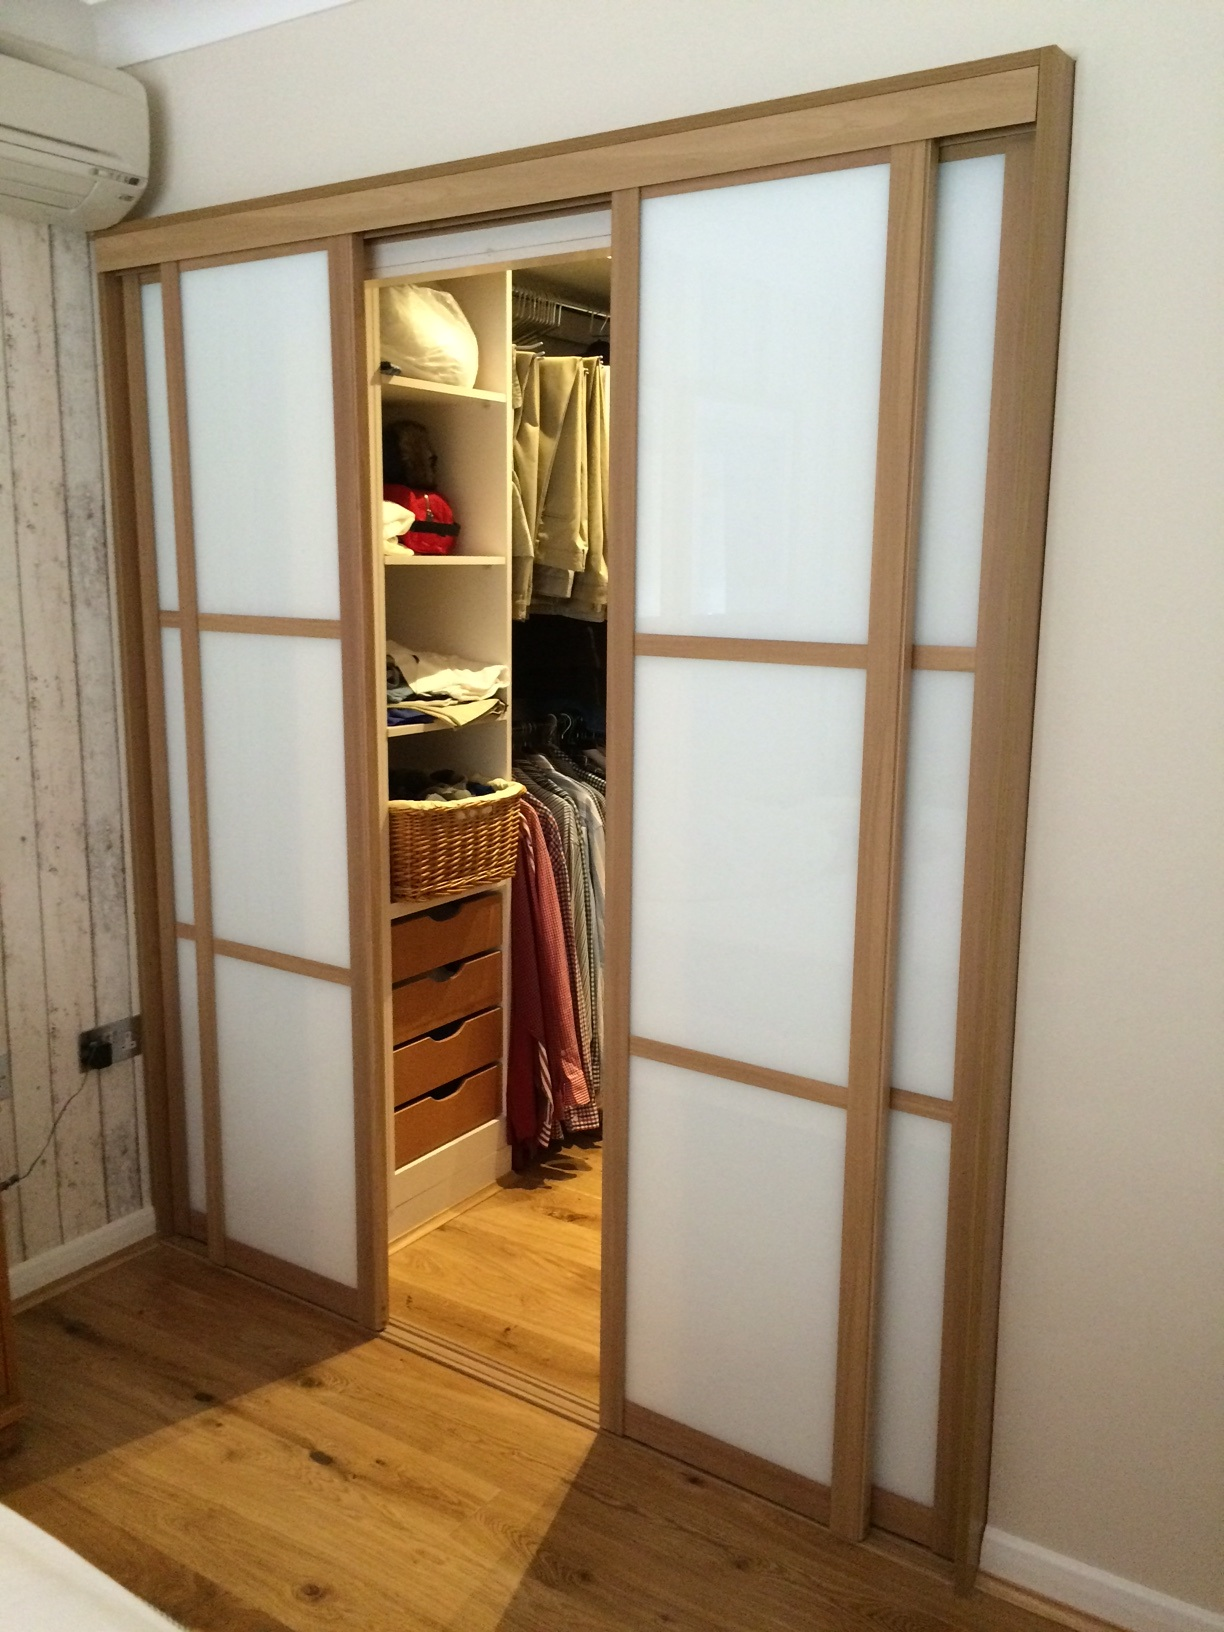 Sliding Wardrobe Doors for Walk-In